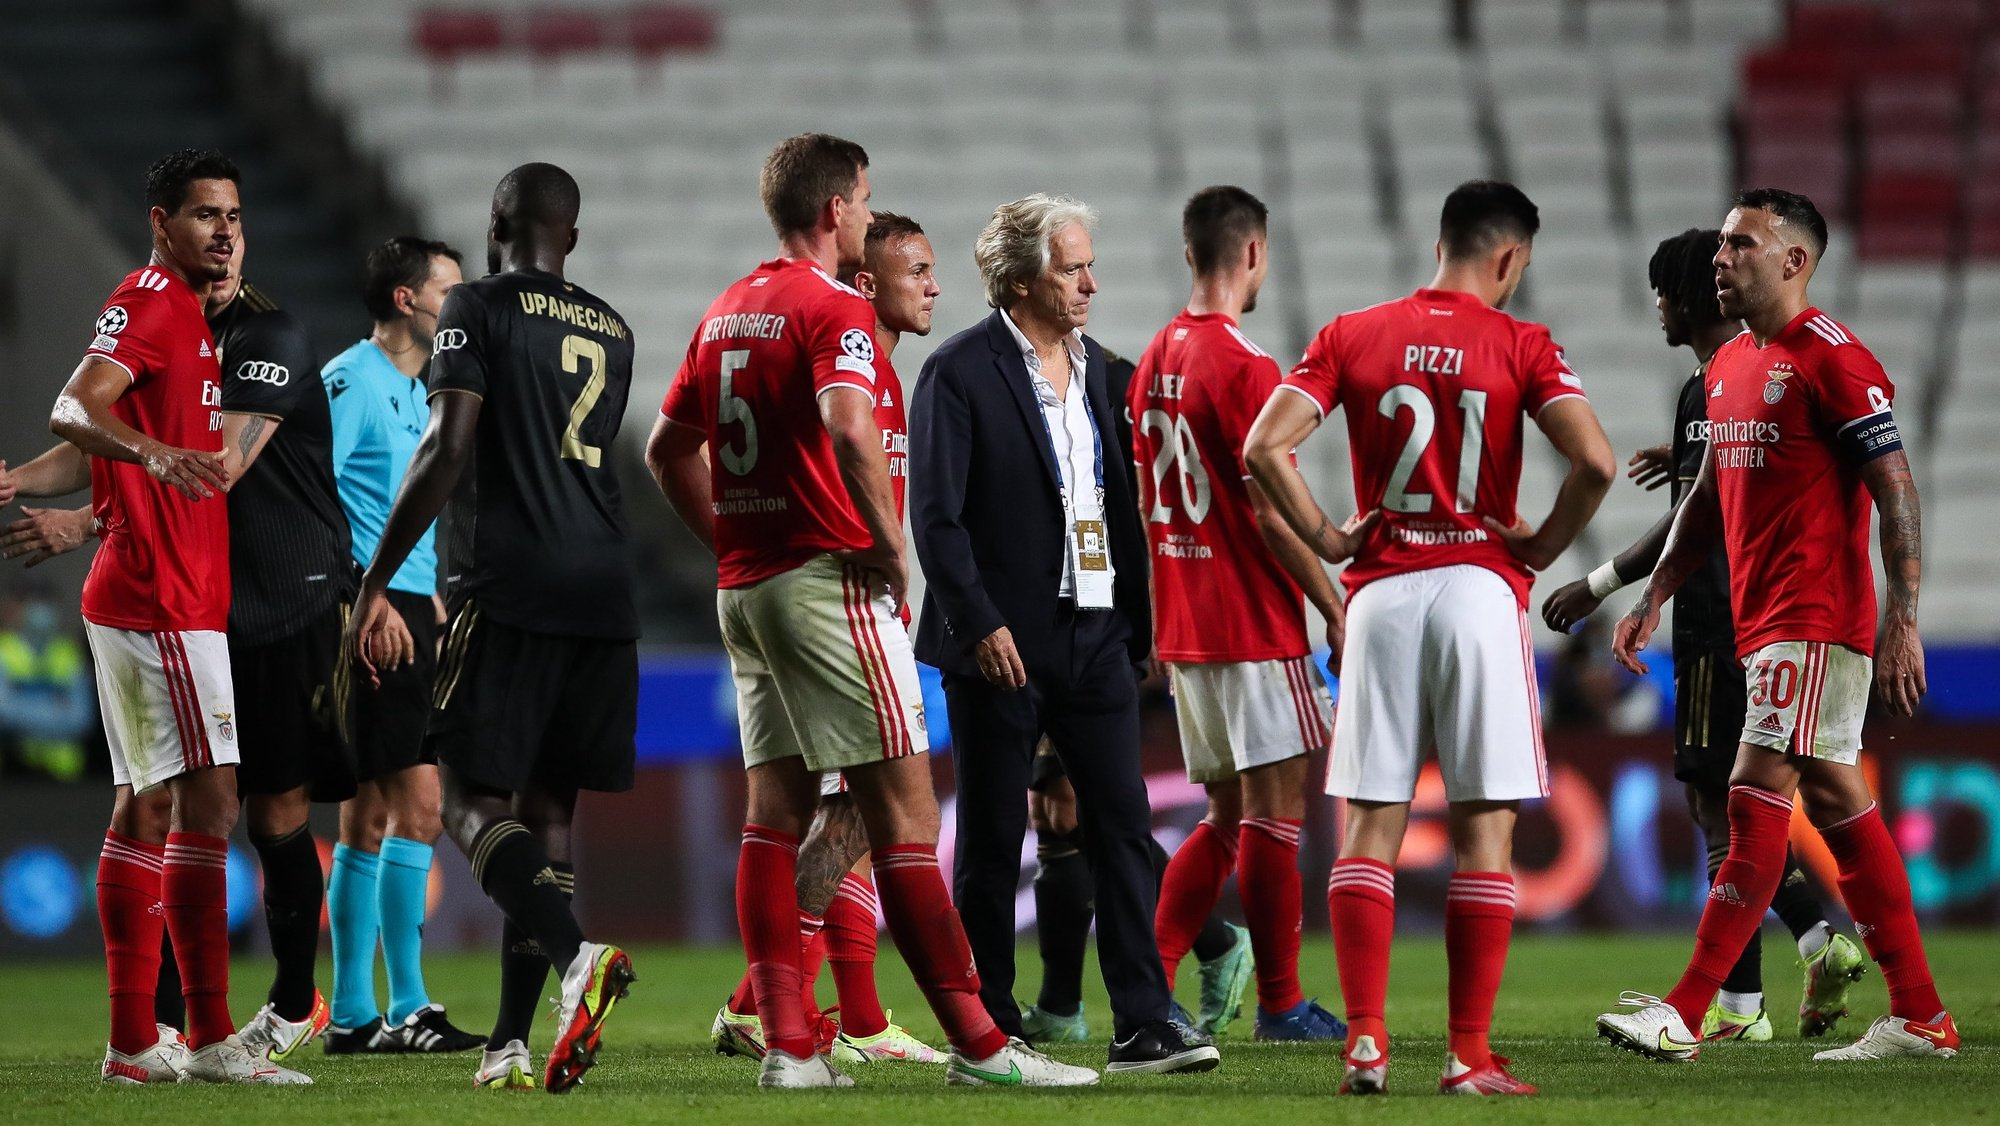 Benfica head coach Jorge Jesus (C) and his players reacts after the UEFA Champions League Group E soccer match against Bayern Munich held at Luz Stadium, in Lisbon, Portugal, 20 October 2021. MÁRIO CRUZ/LUSA